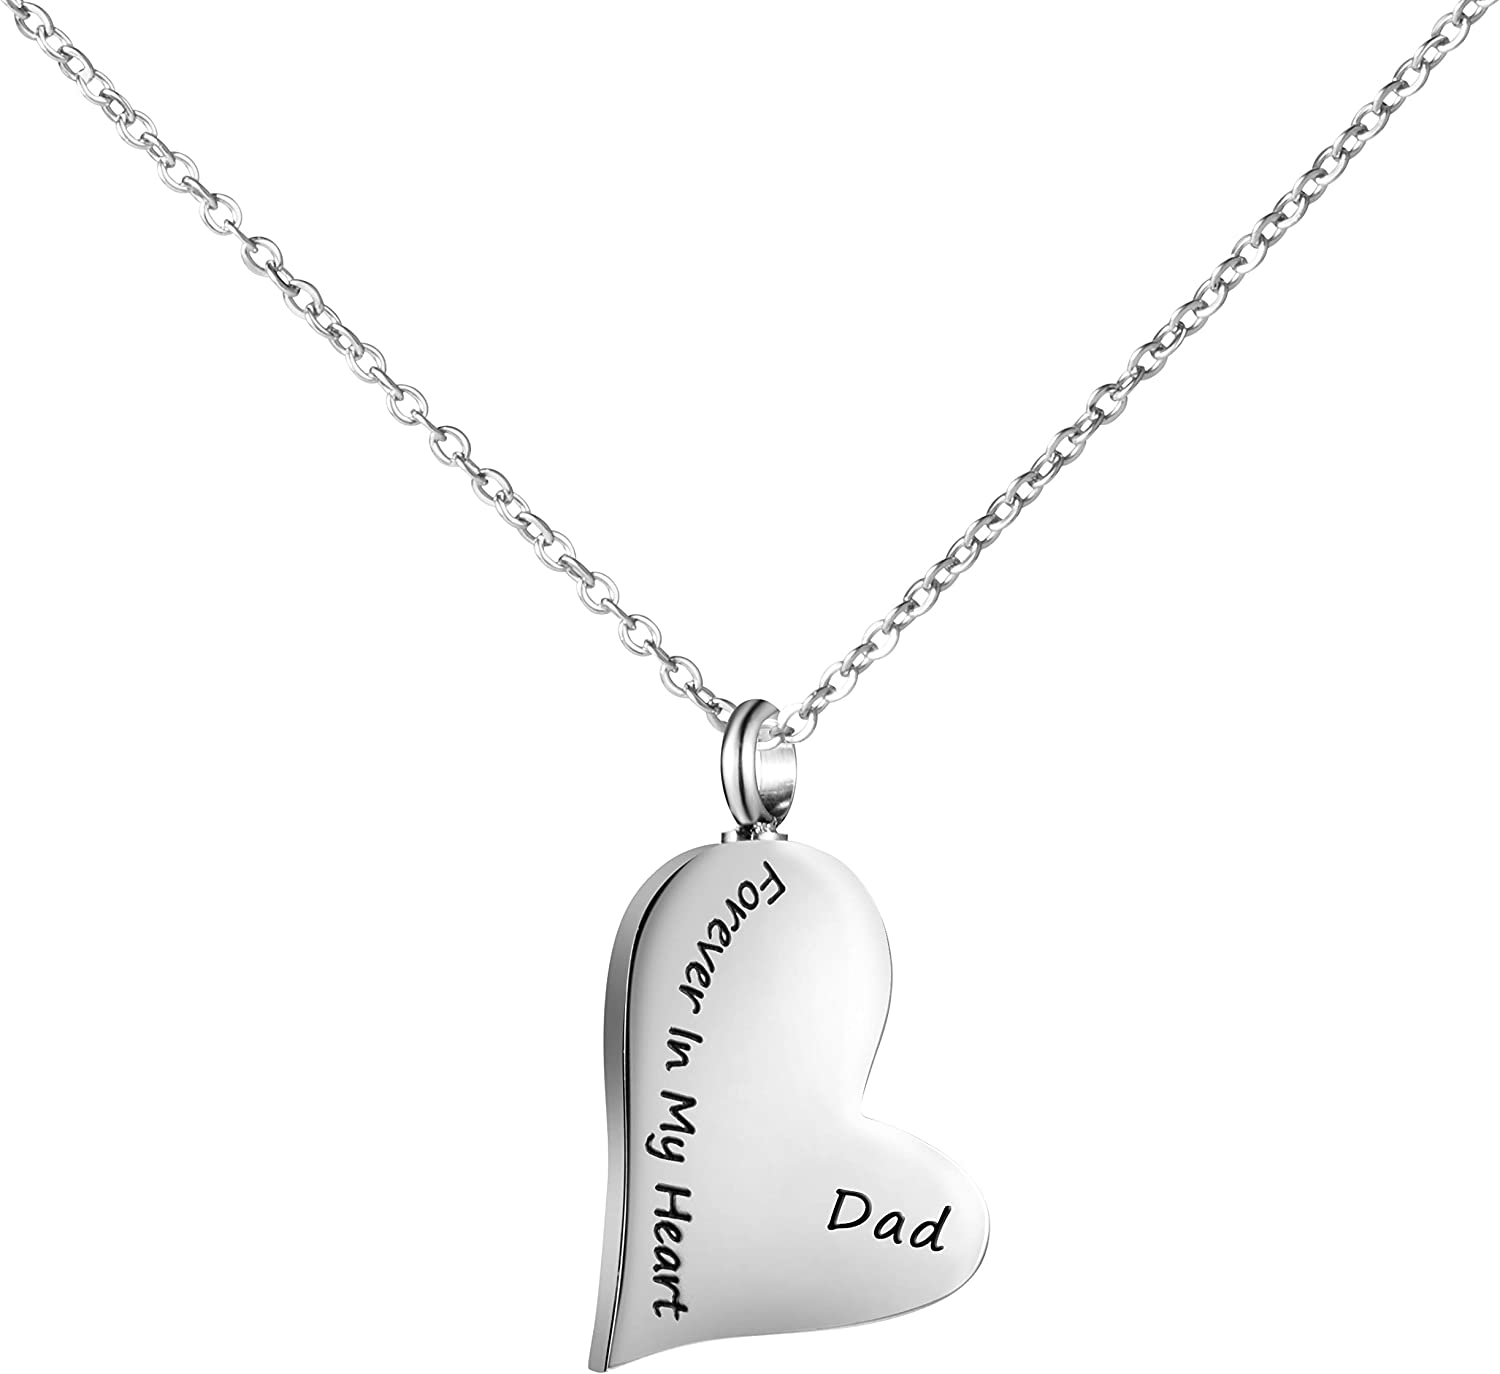 JoycuFF Cremation Urn Necklace for Loved of Max 59% OFF Ashes one Loss Complete Free Shipping